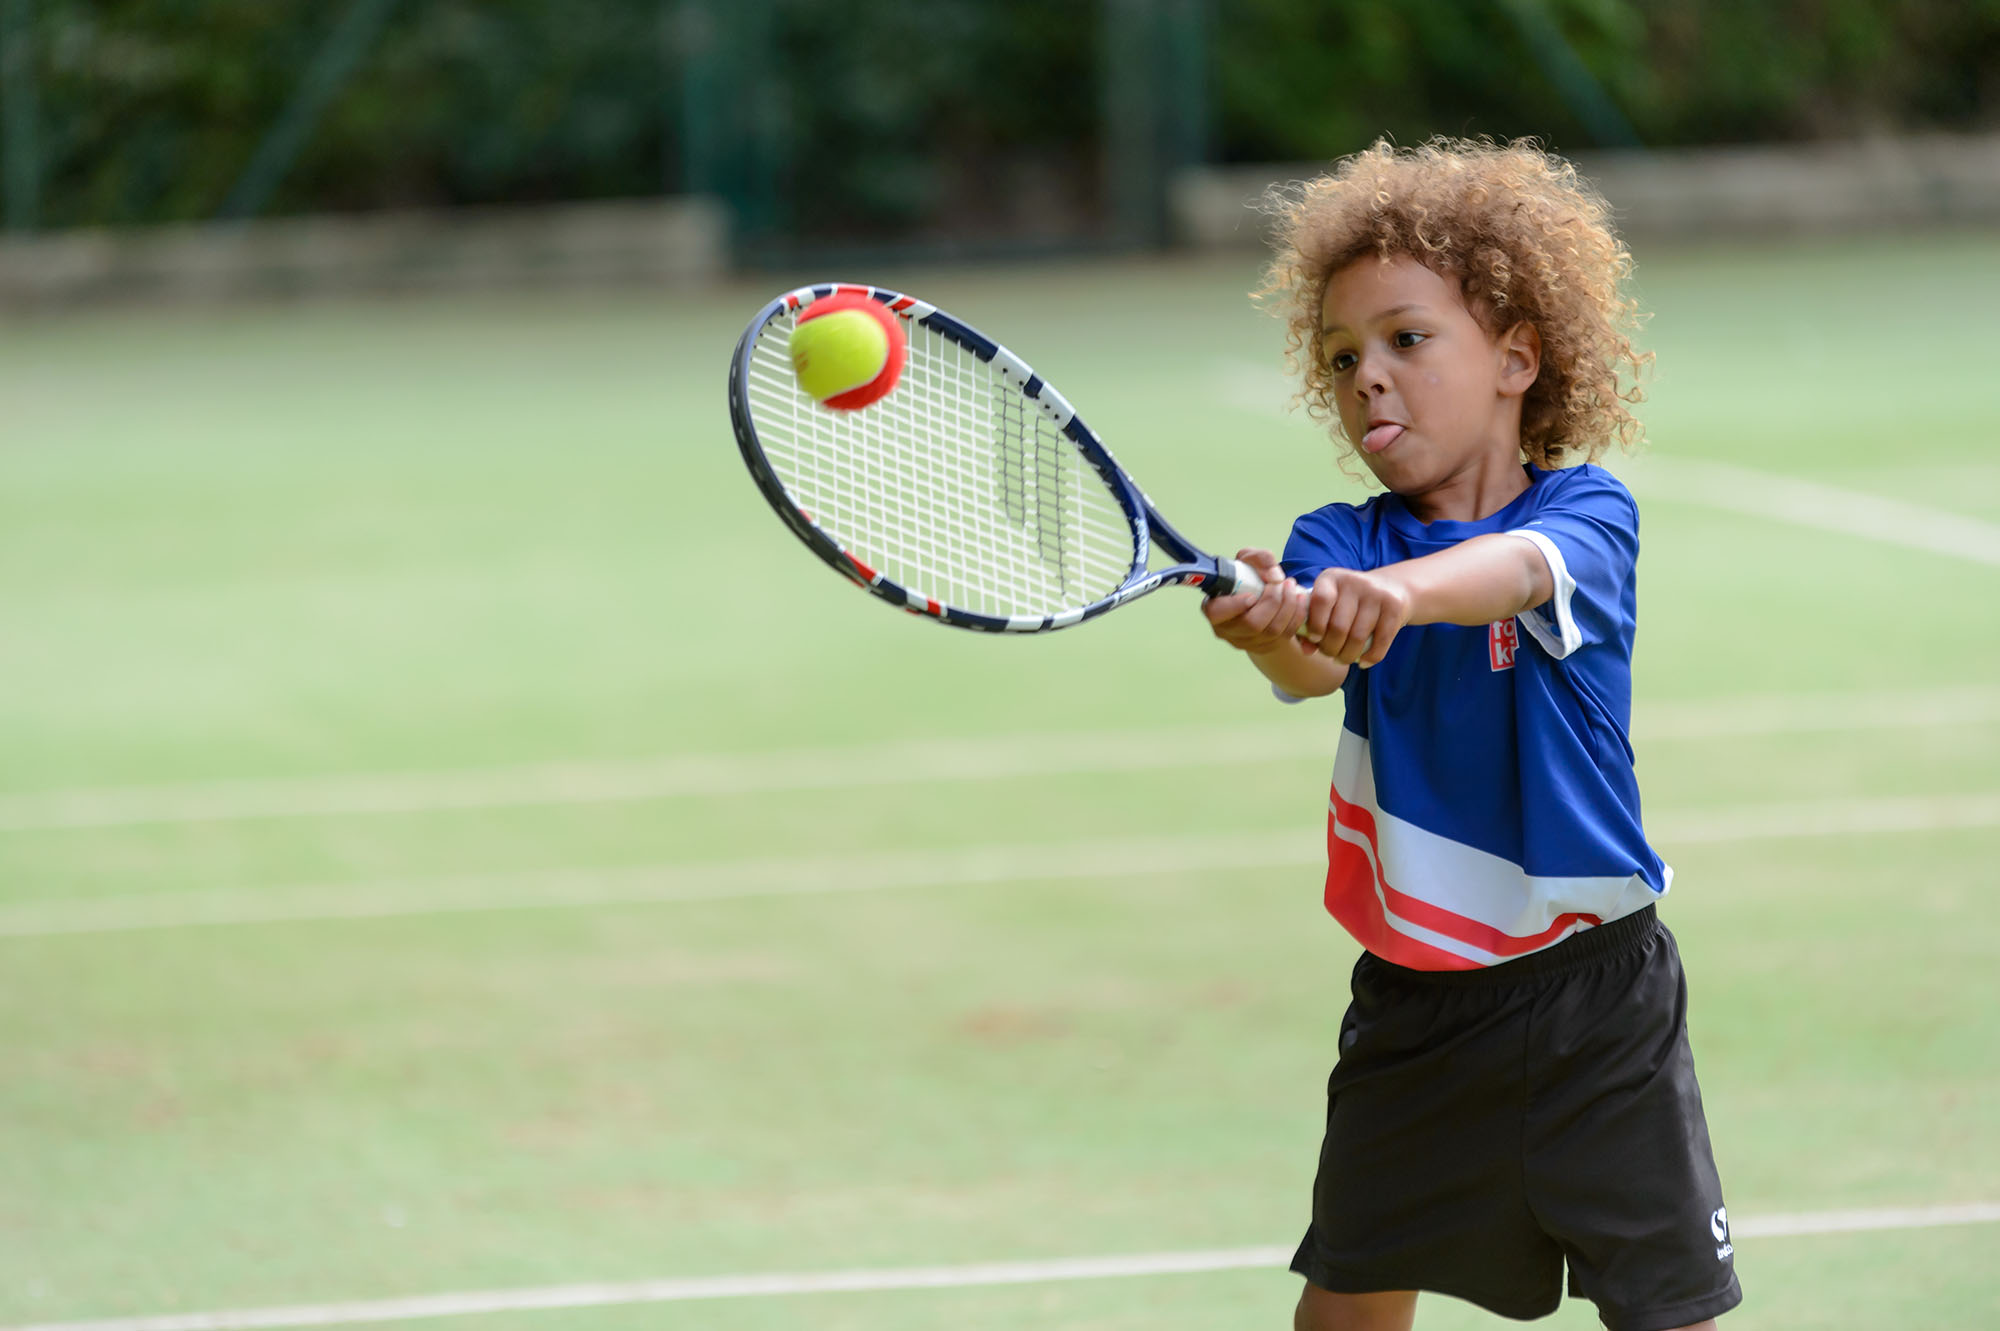 Child playing mini-tennis